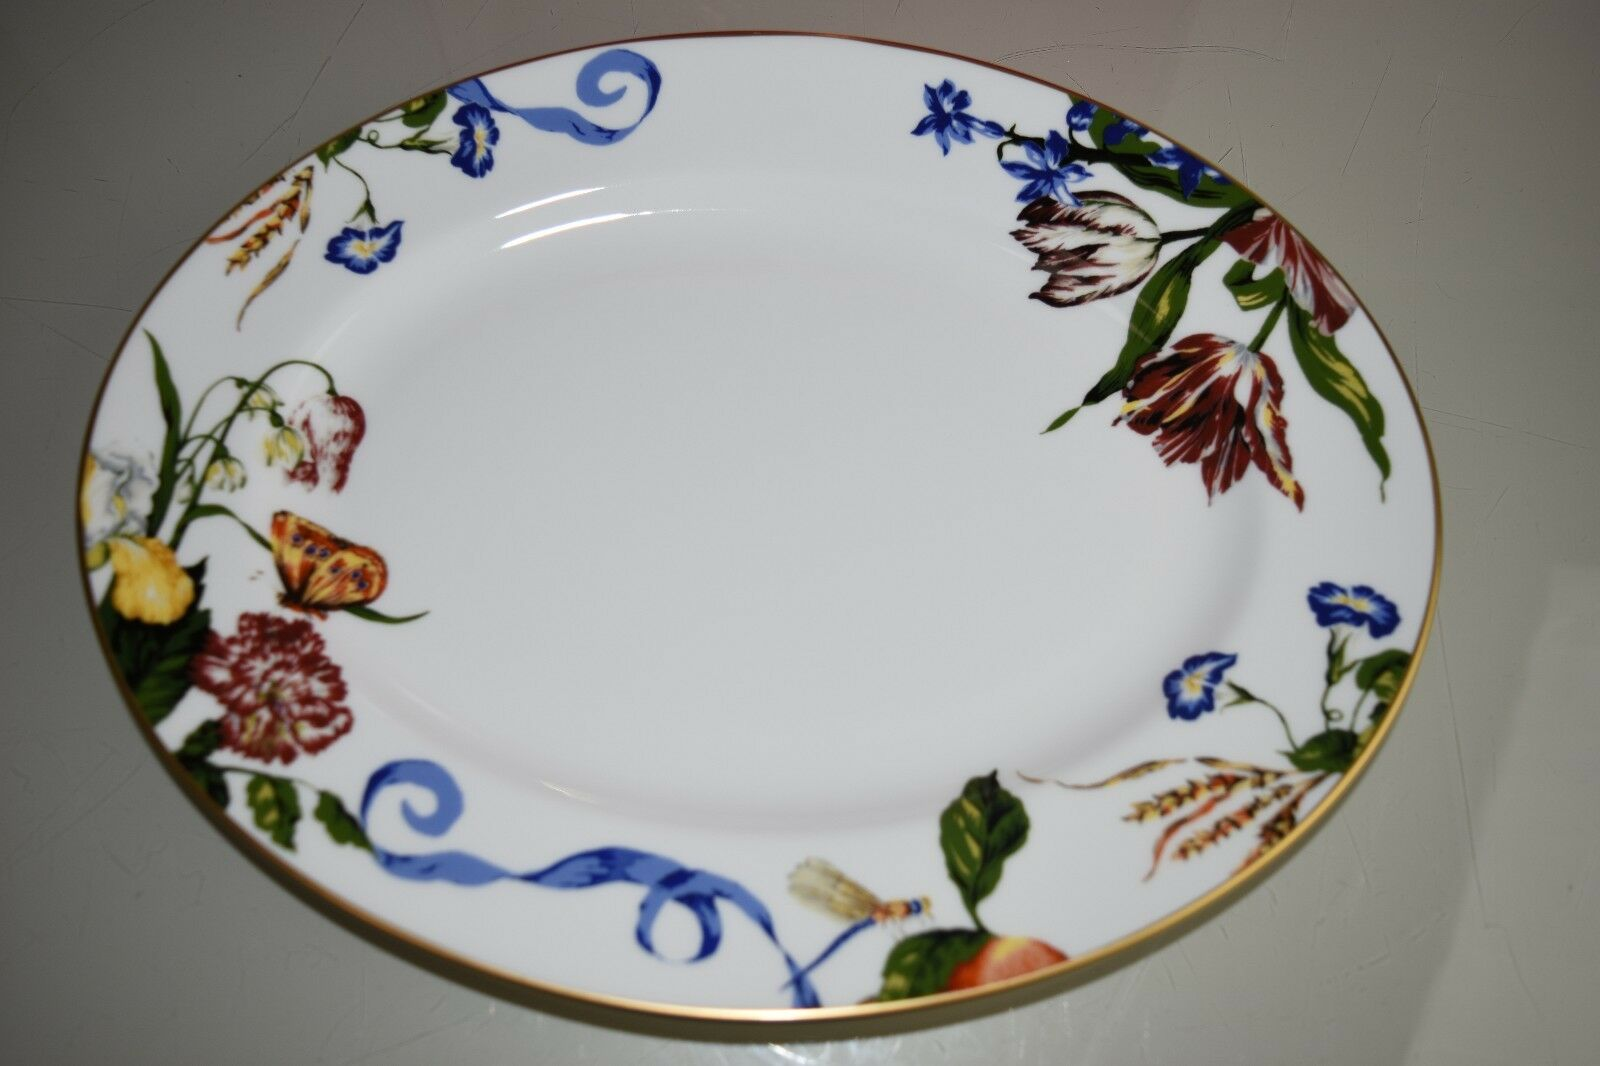 256 NEW in GIFT BOX Lenox Stravagante Scalamandre Oval Platter Butterfly 13